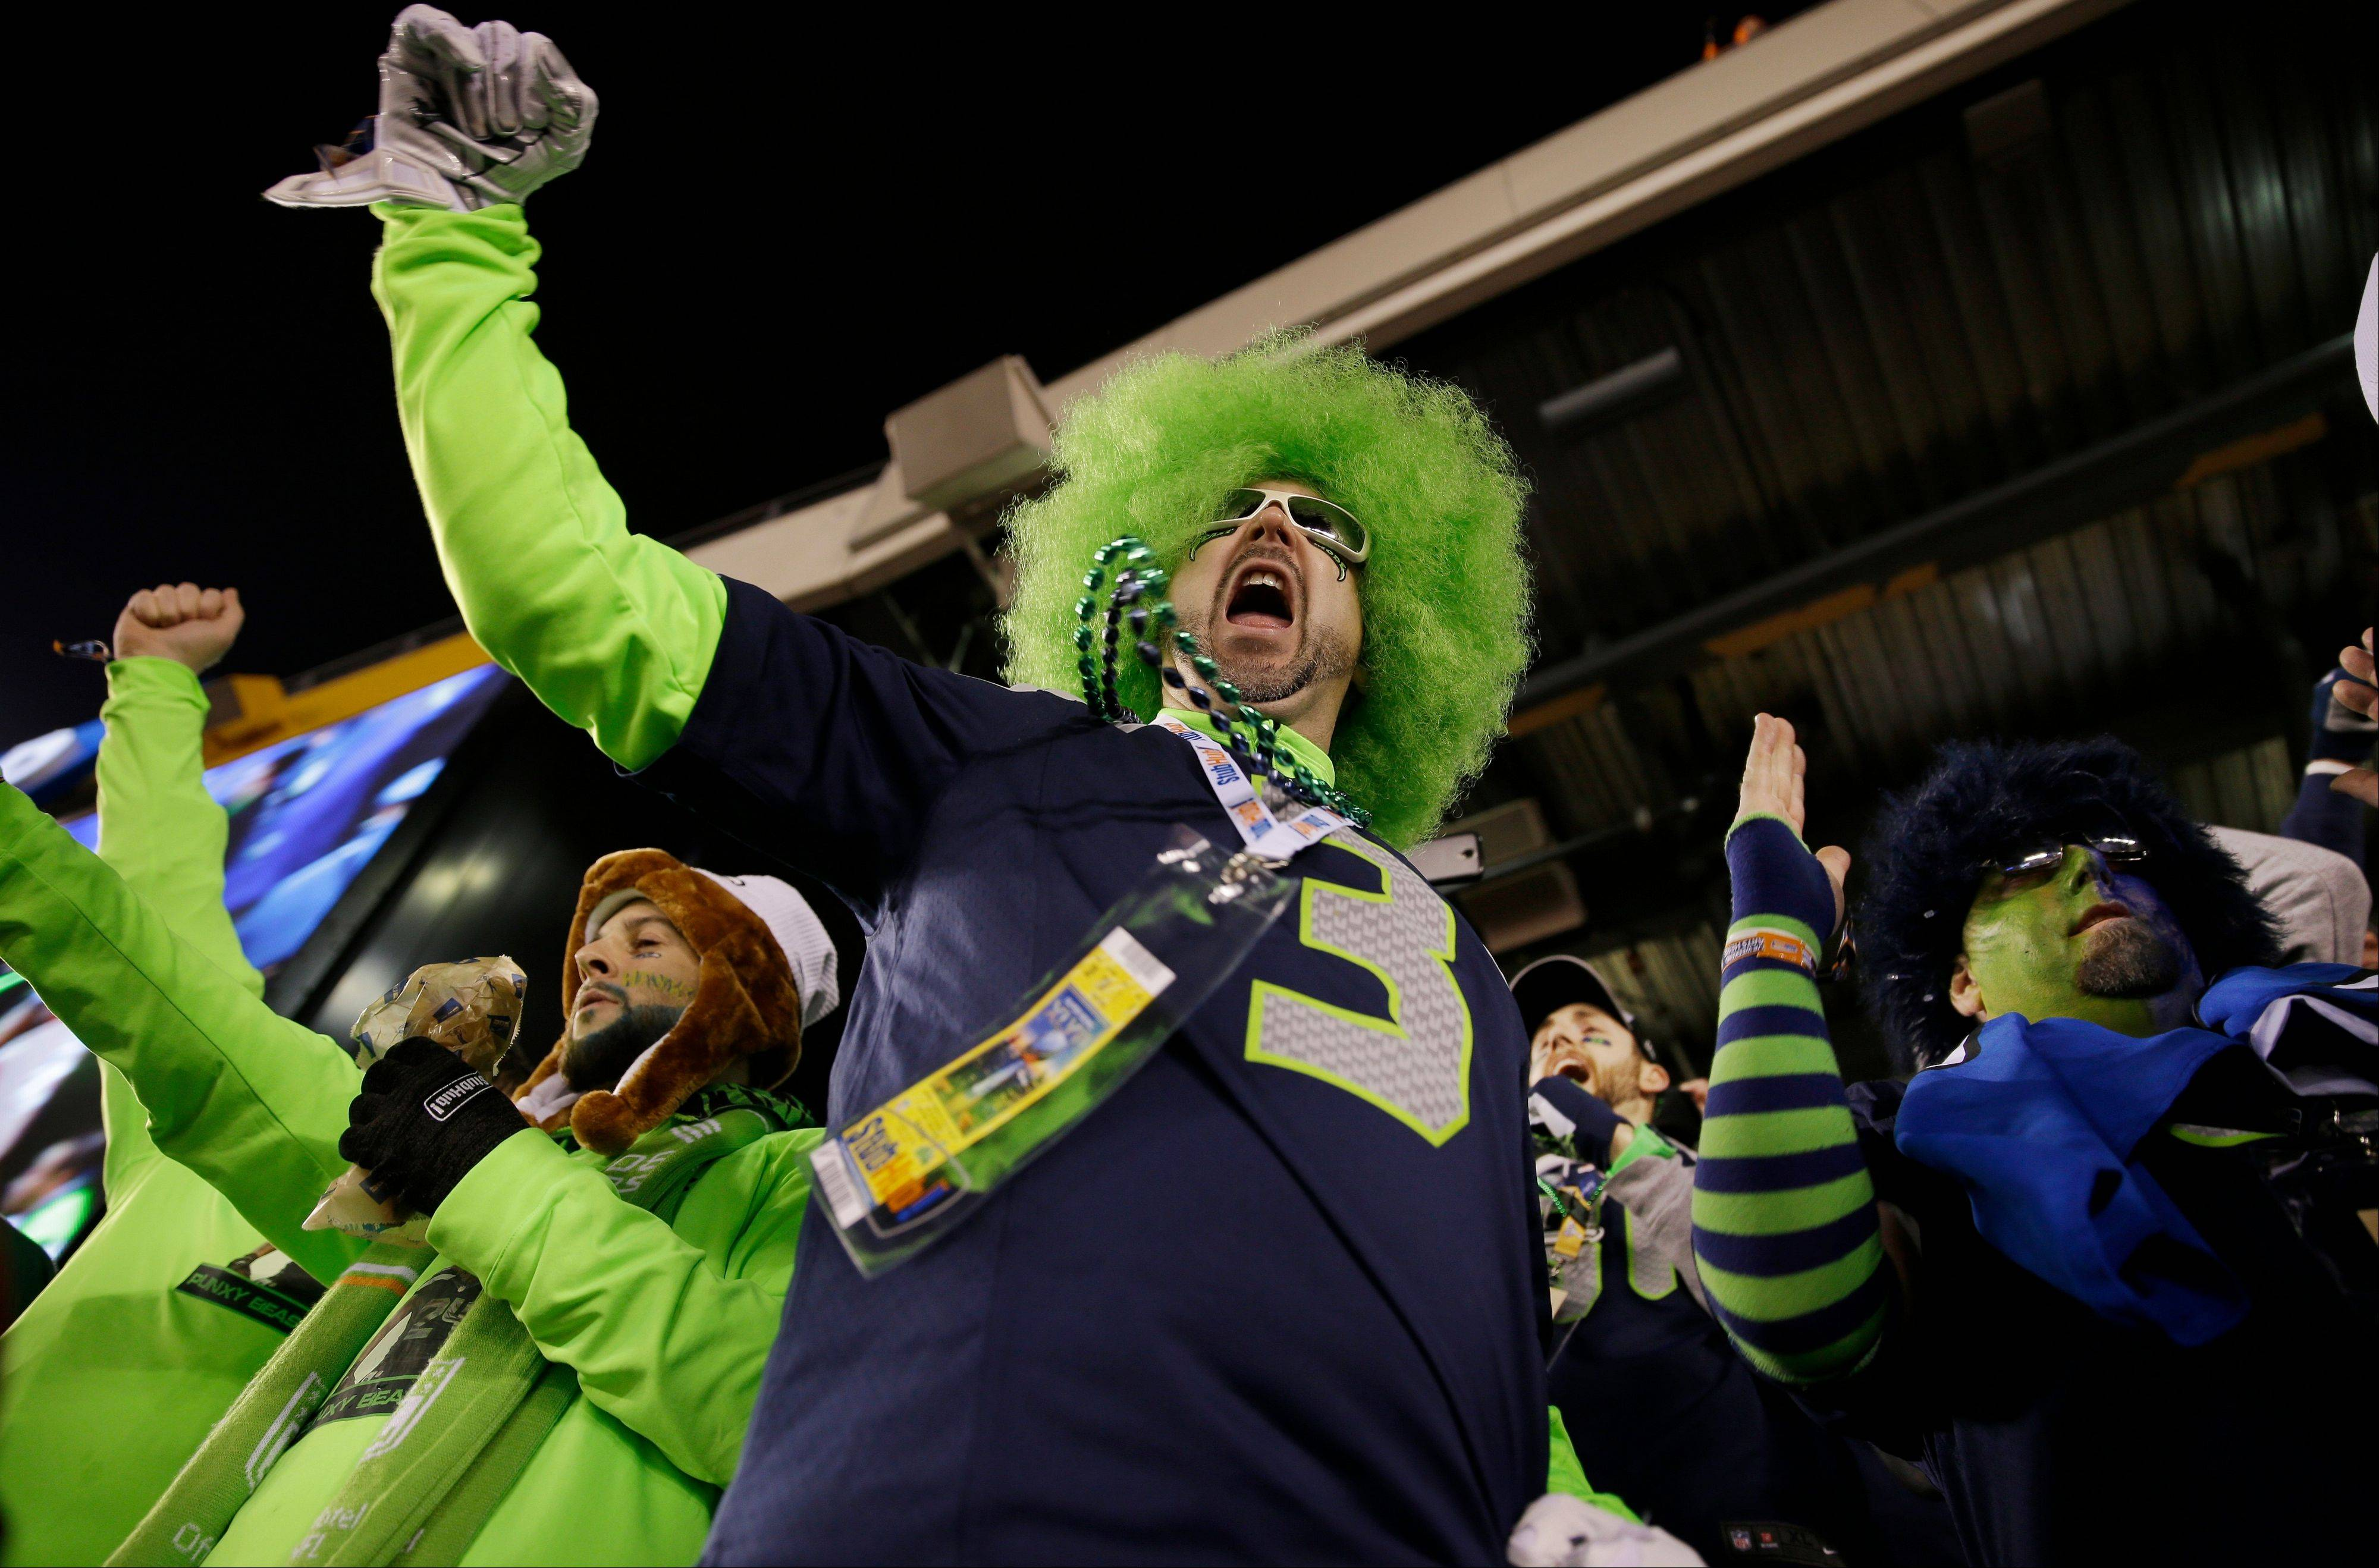 A Seattle Seahawks fan cheers during the first half the NFL Super Bowl XLVIII football game.